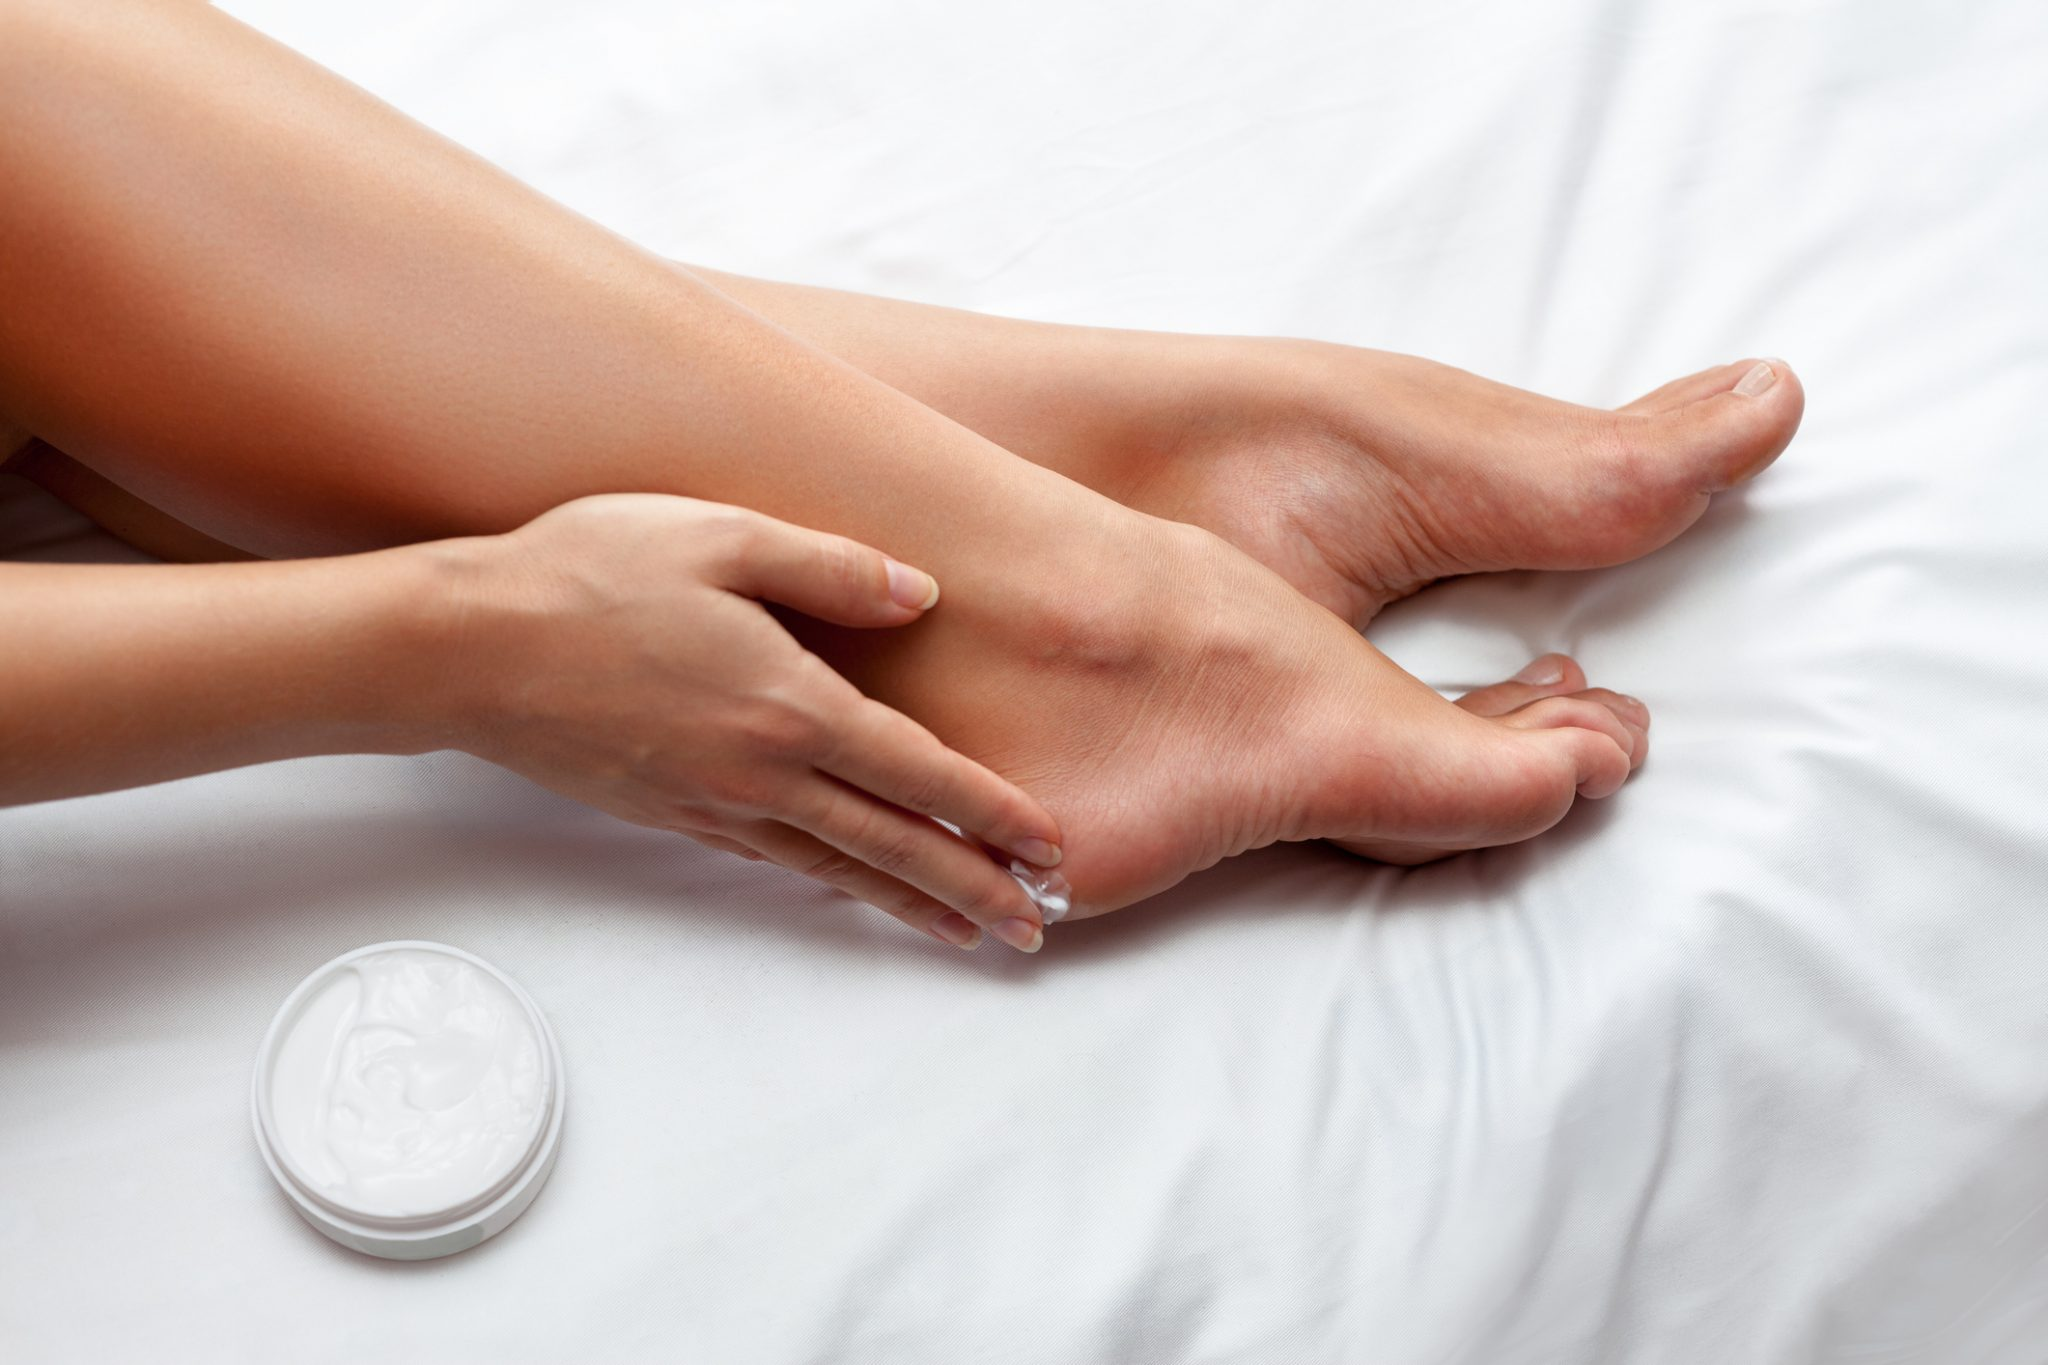 Woman caring about her feet and putting hydrating cream on it